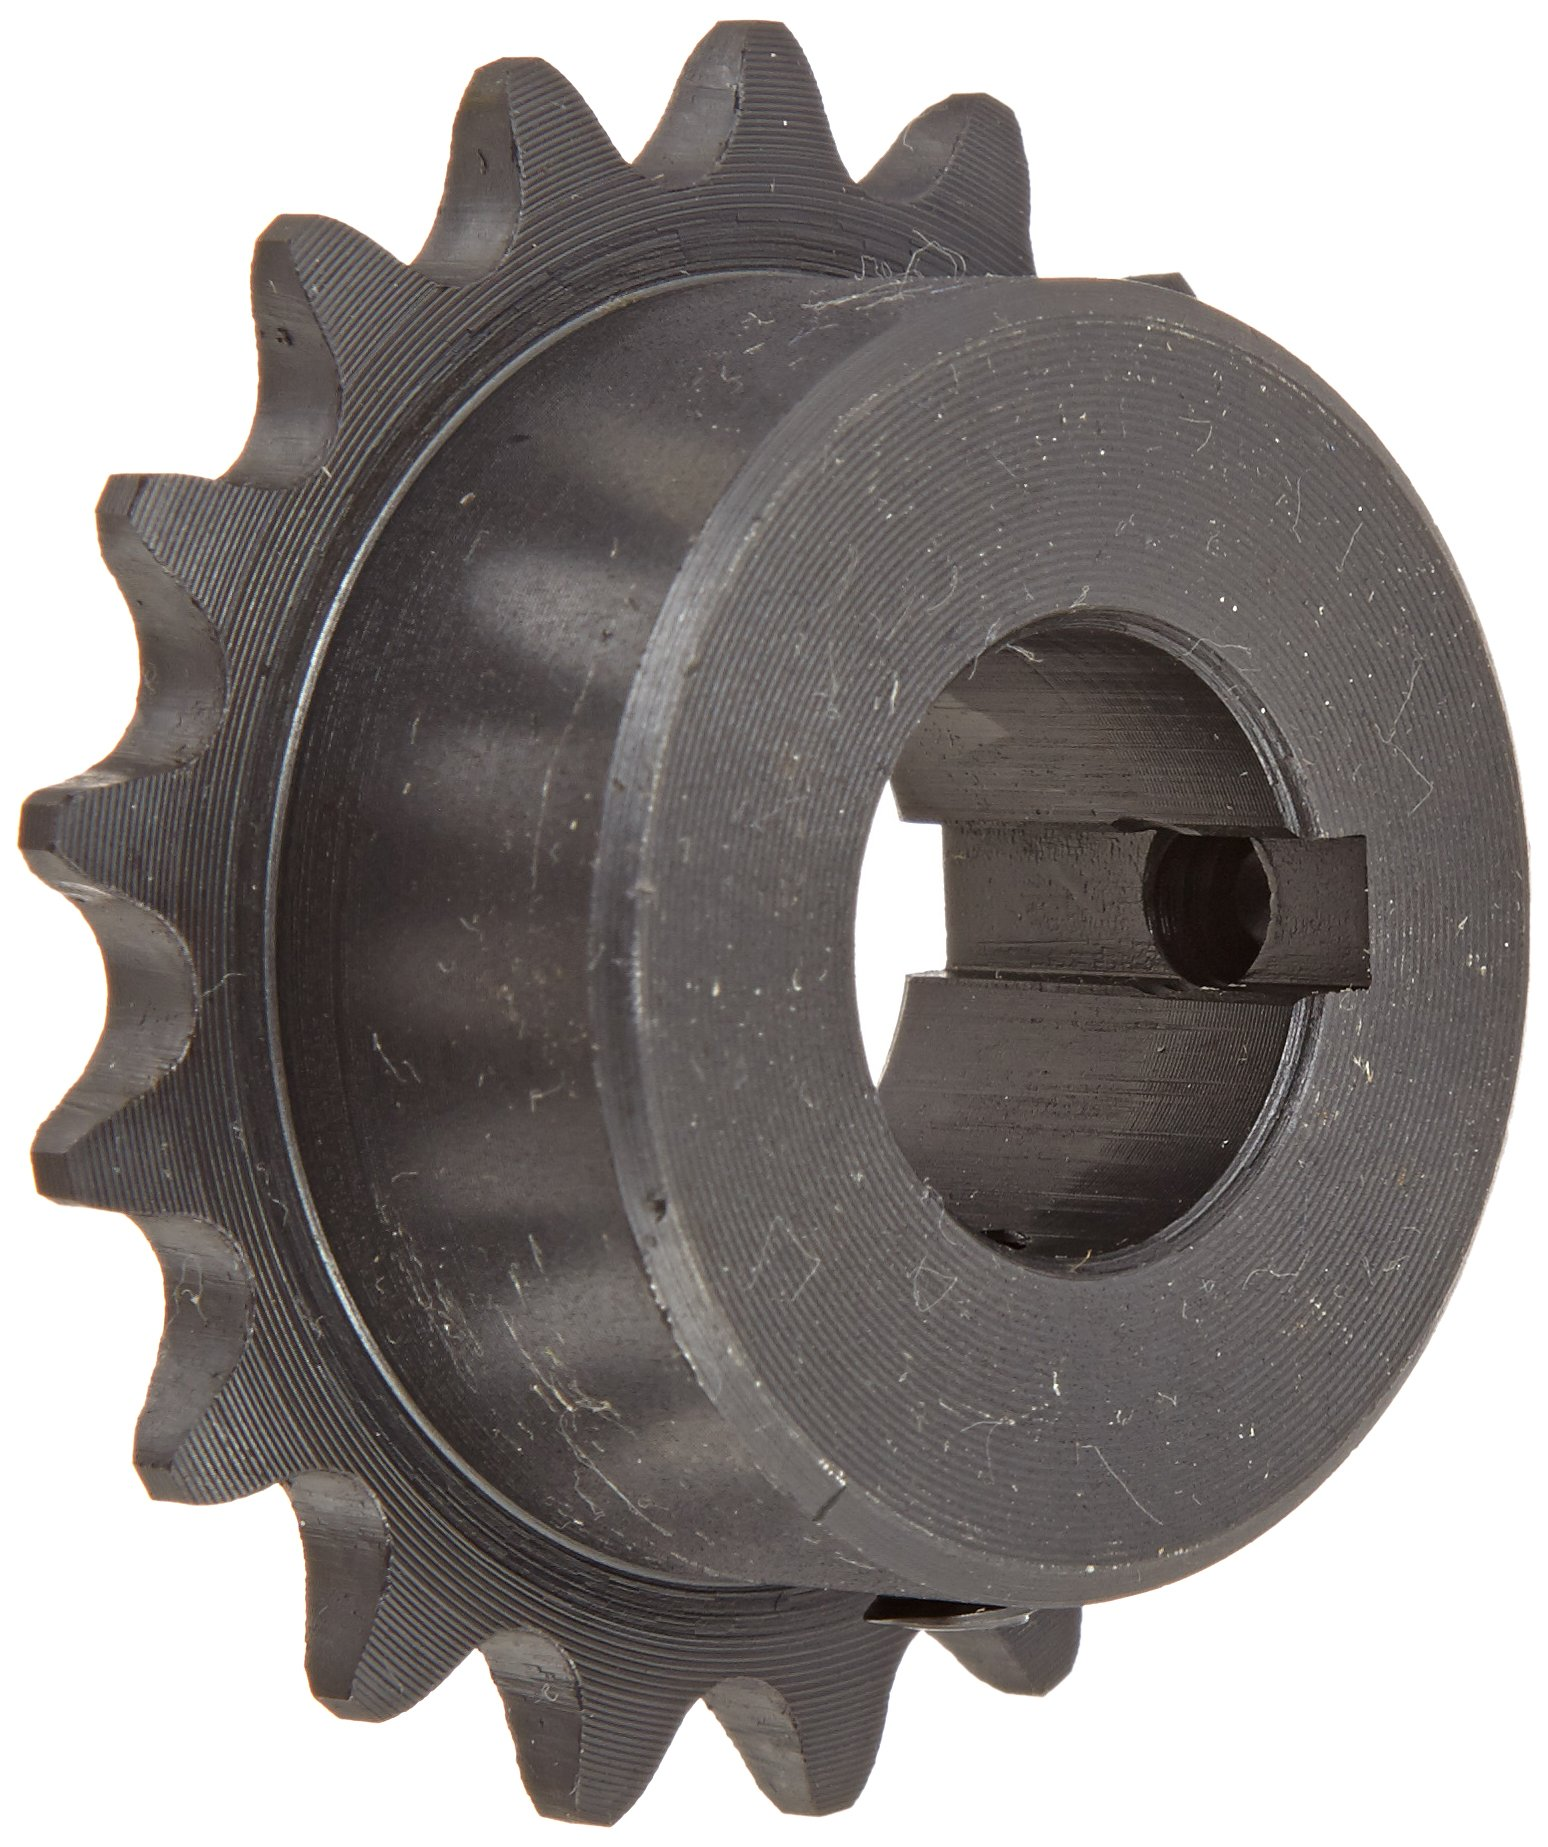 Tsubaki 35B17FL Finished Bore Sprocket, Single Strand, Hardened Teeth, Inch, #35 ANSI No., 3/8'' Pitch, 17 Teeth, 3/4'' Bore by Tsubaki